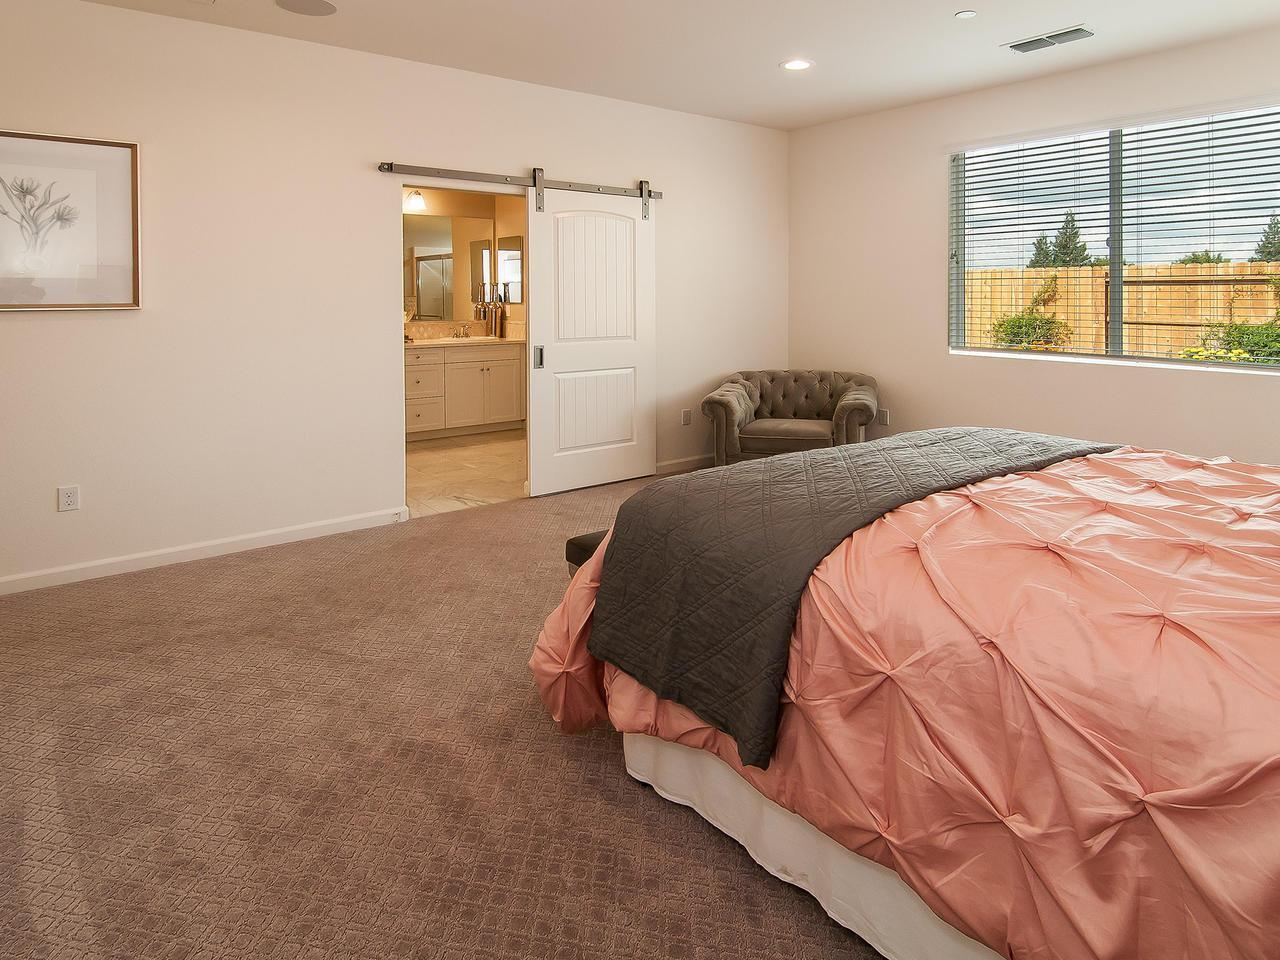 Bedroom featured in the Residence 1789 By Legacy Homes in Merced, CA